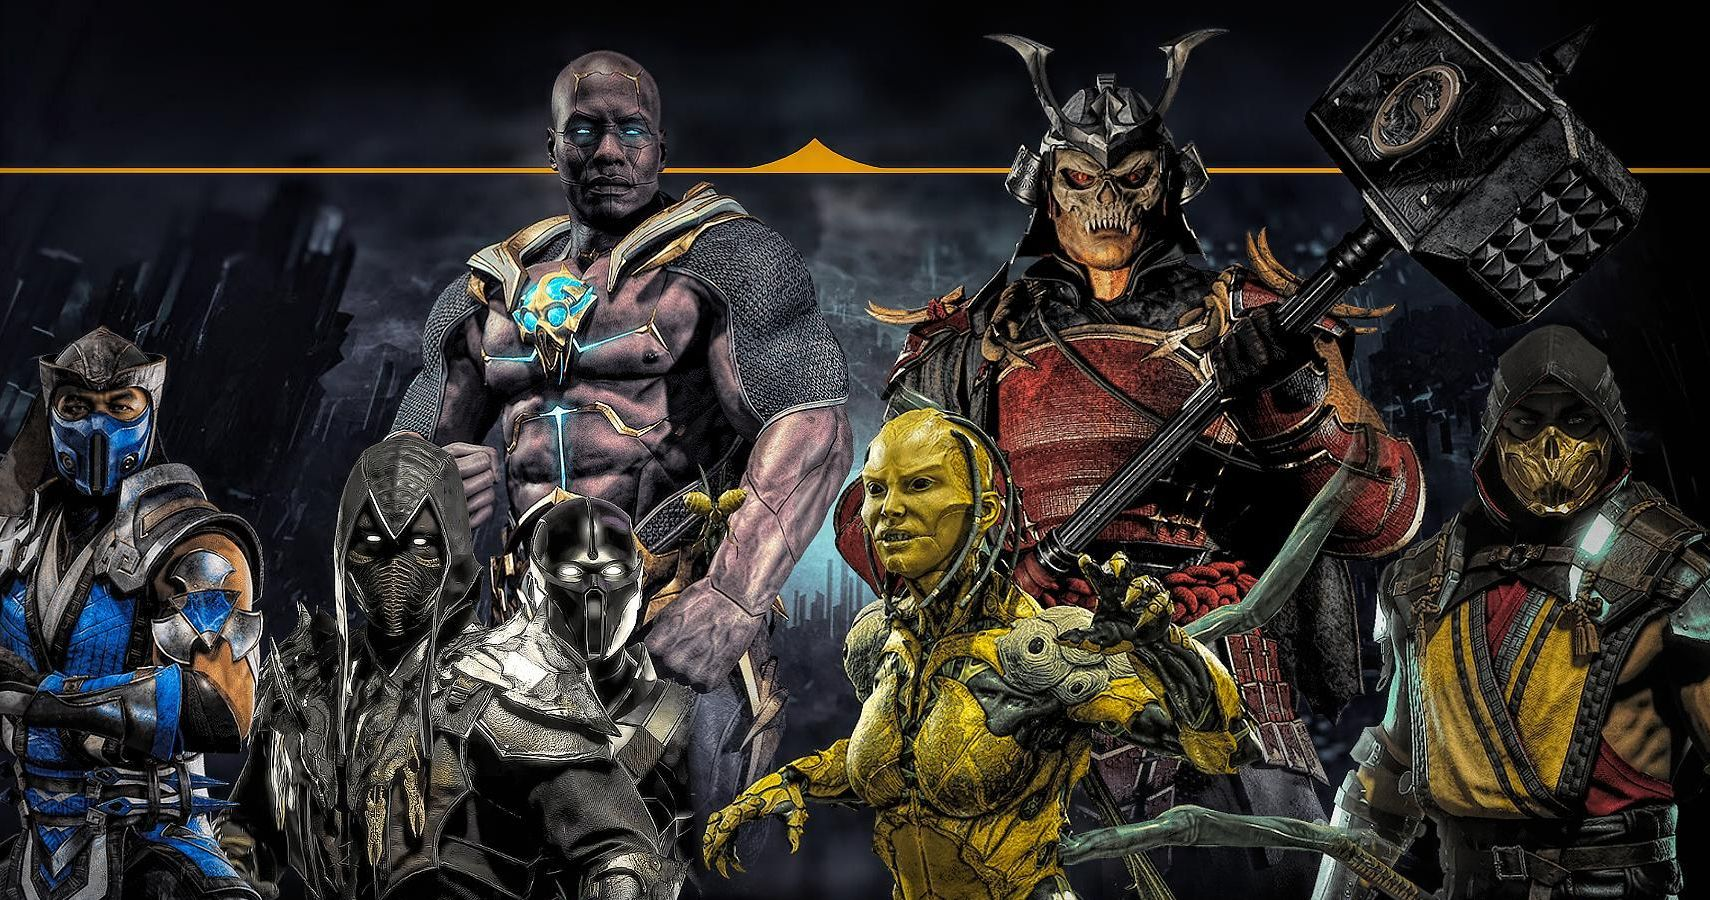 Mortal Kombat 11 EVO 2019: What Characters We Expect To See On Top